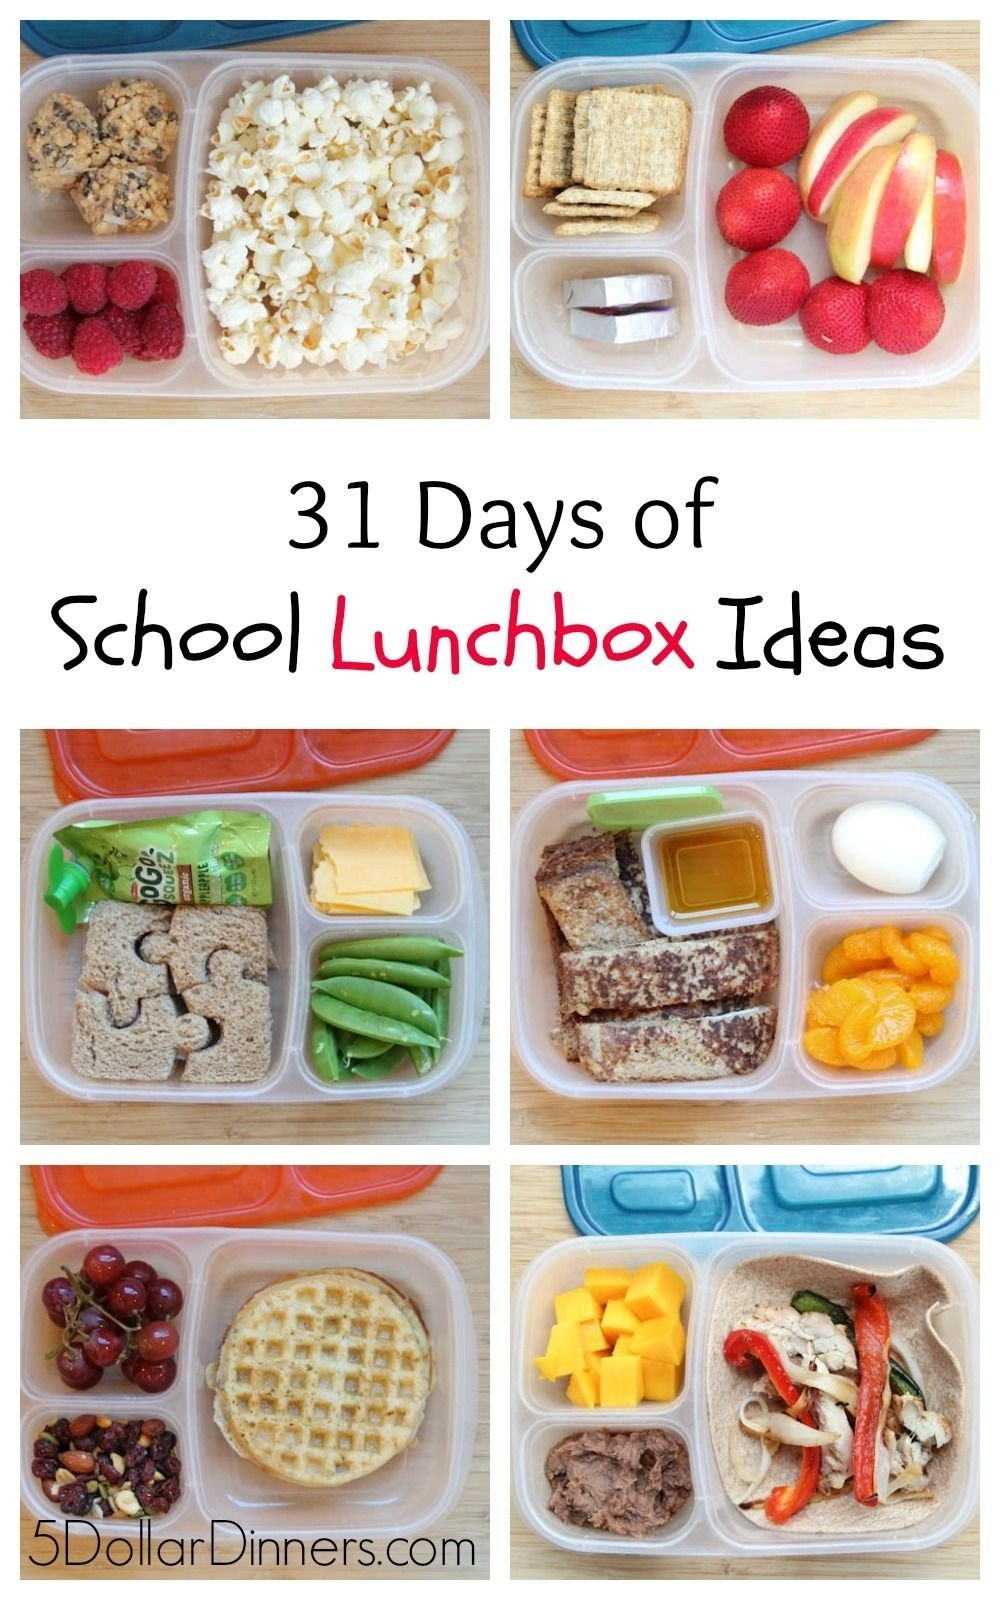 10 Great School Lunch Ideas For High Schoolers back to school healthy lunch ideas lunchbox ideas free 3